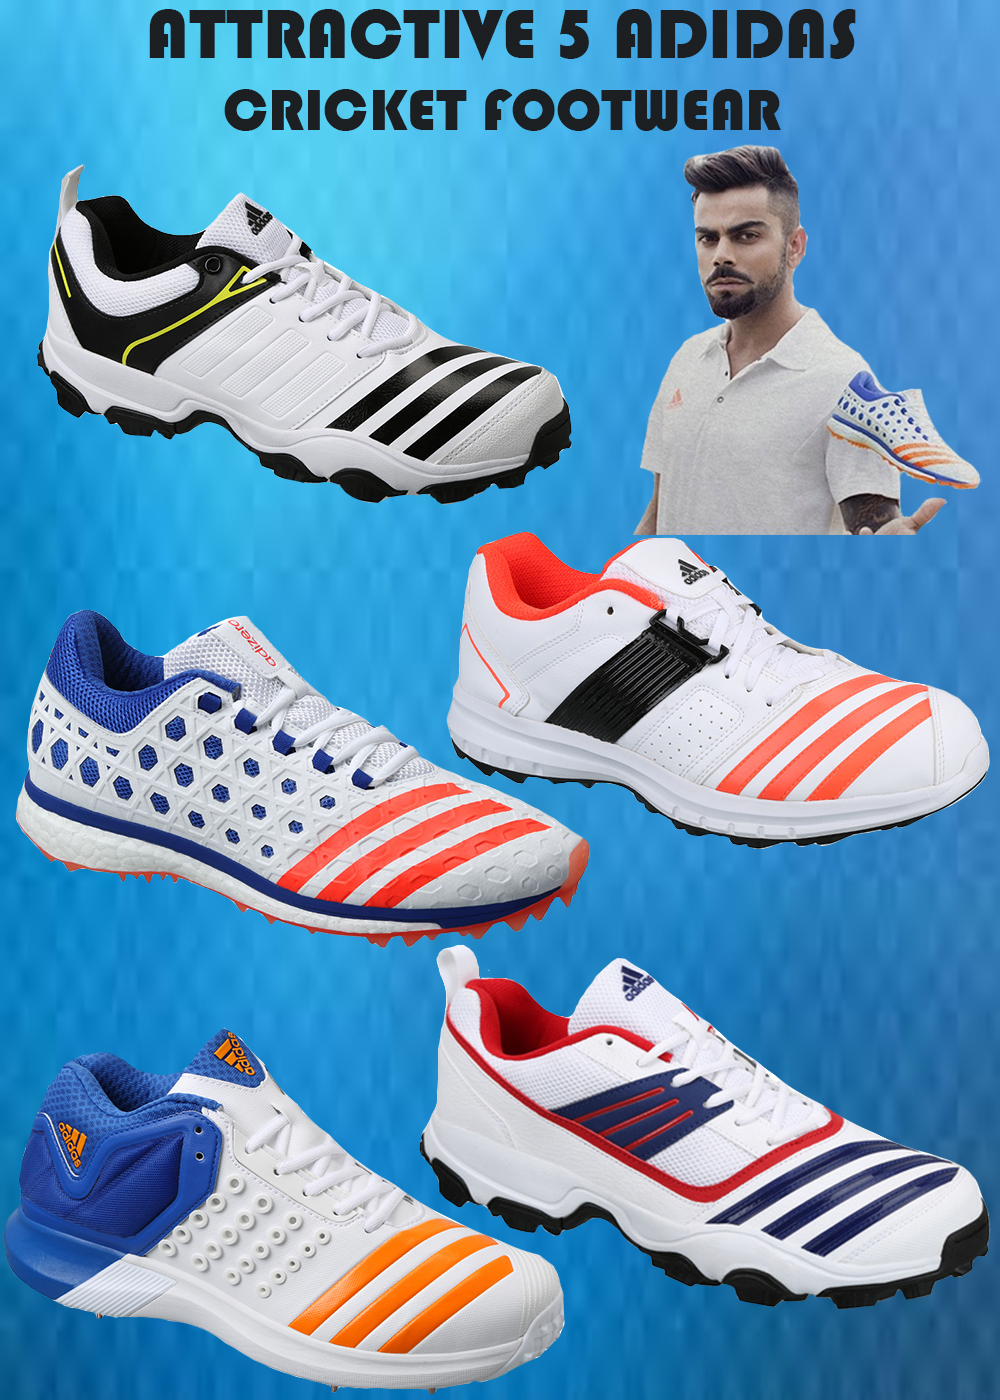 ATTRACTIVE 5 ADIDAS CRICKET FOOTWEAR IMAGE_1